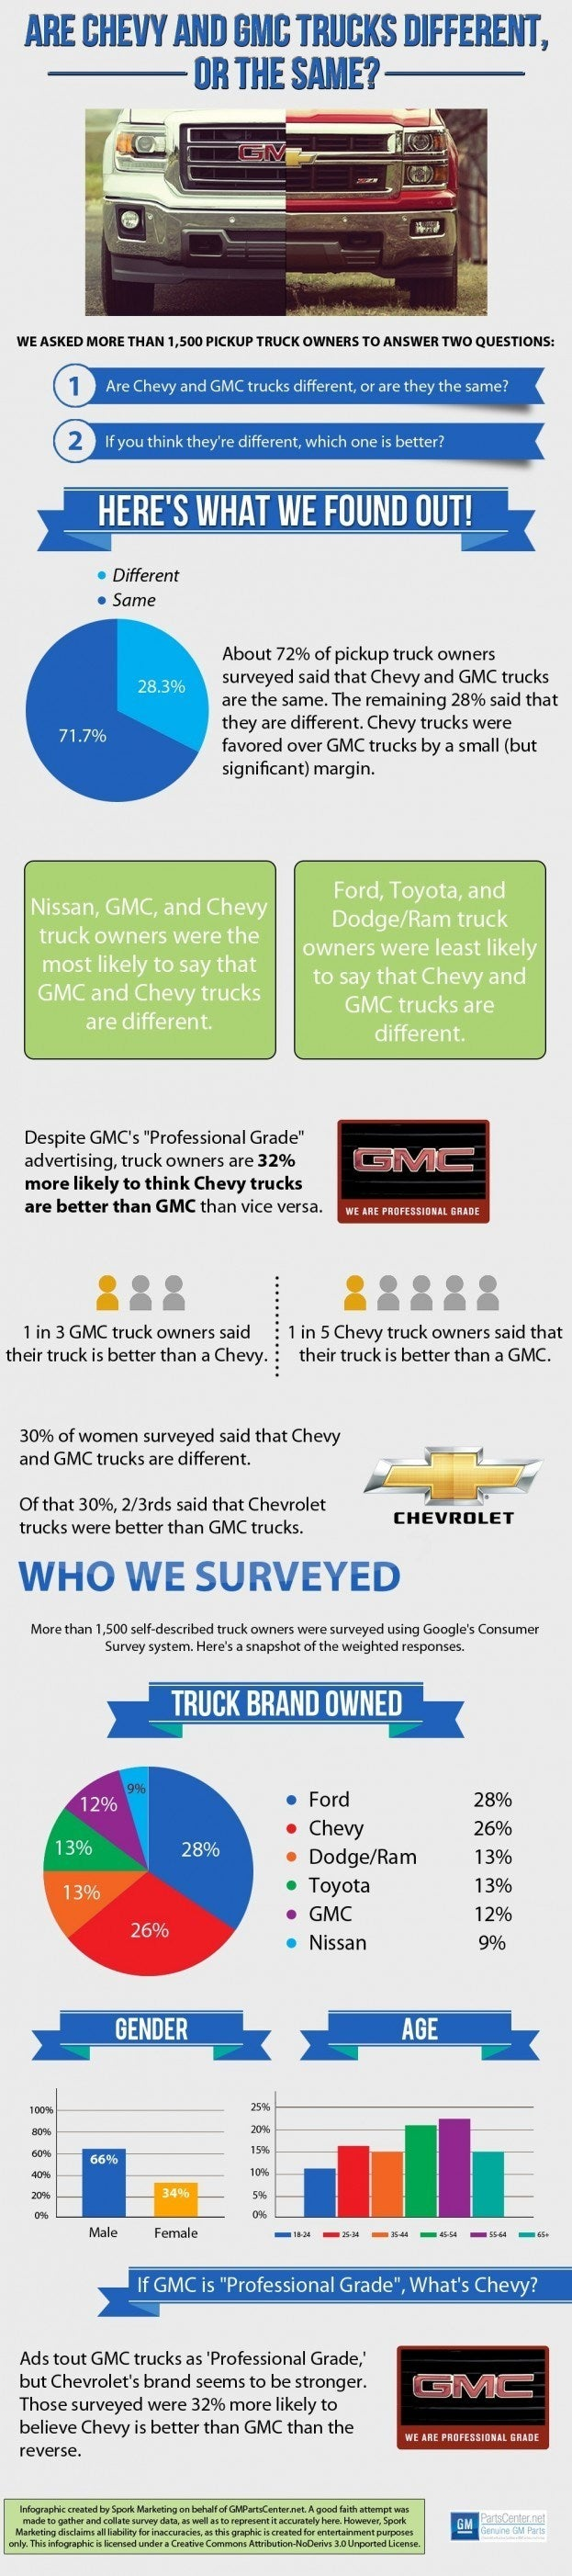 chevy-vs-gmc-infographic